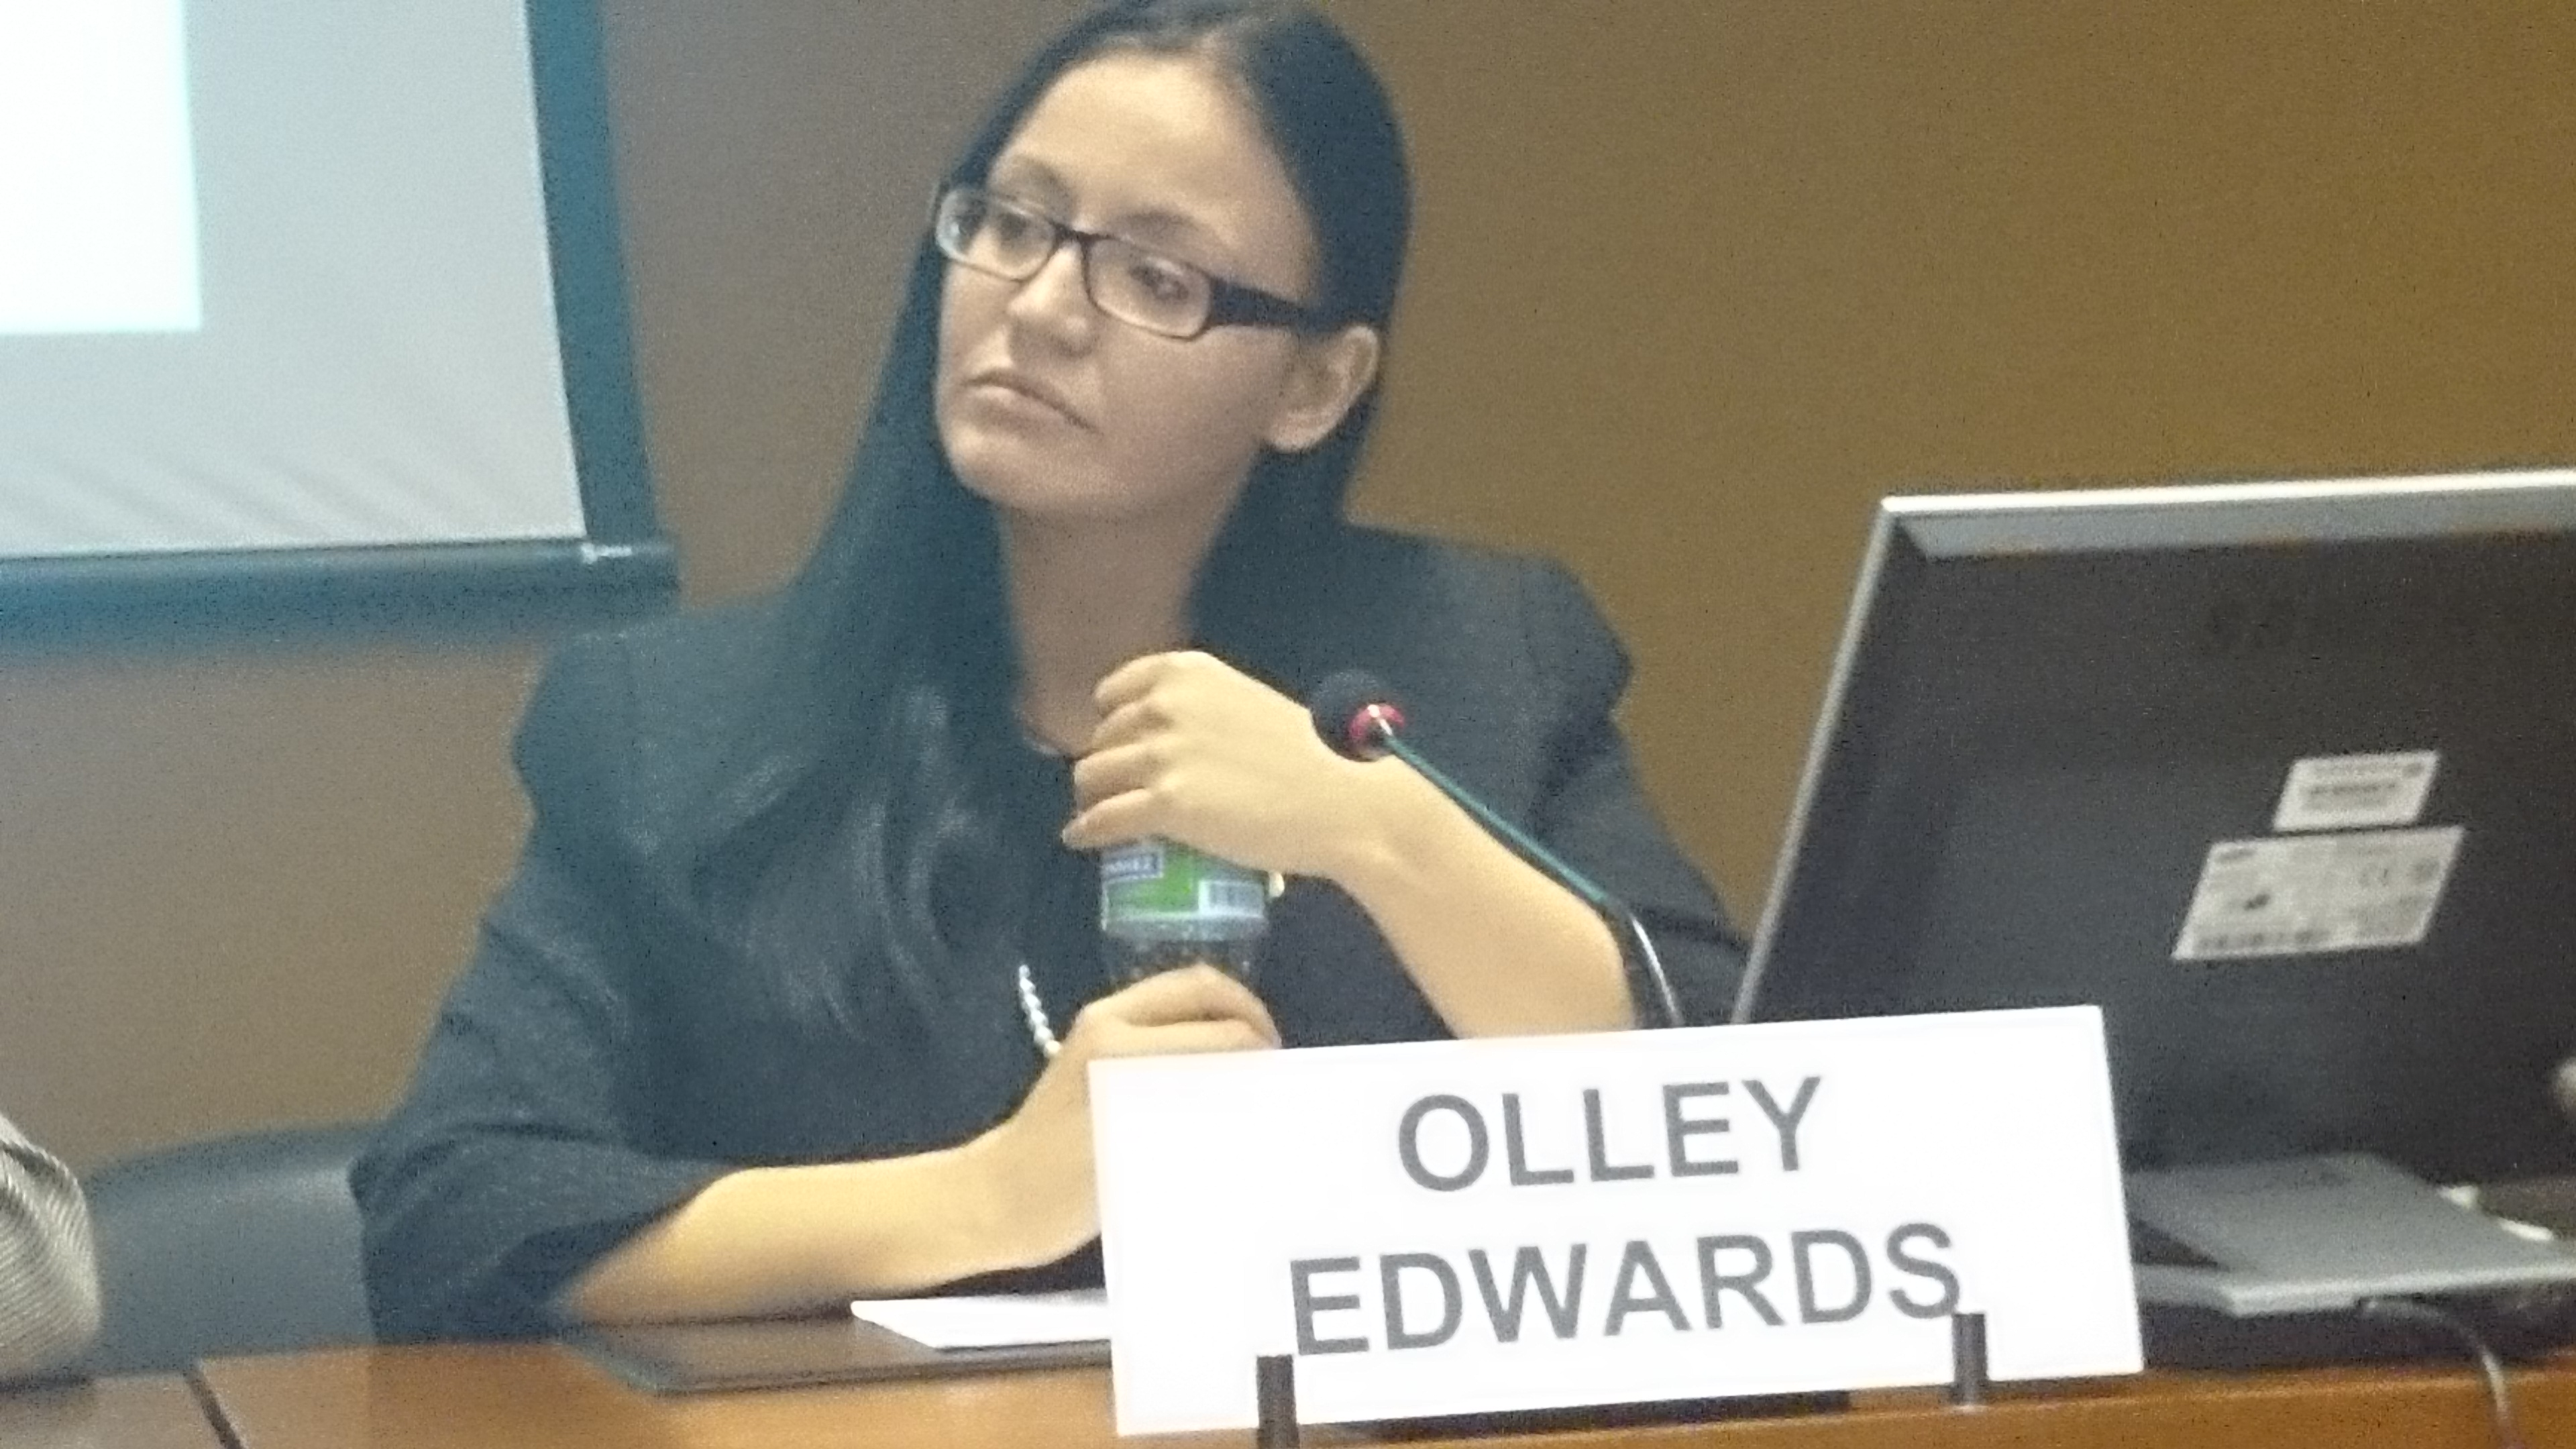 UPDATE – Olley Edwards on Autism Women Matter and the United Nations Economic Commission for Europe Part 1